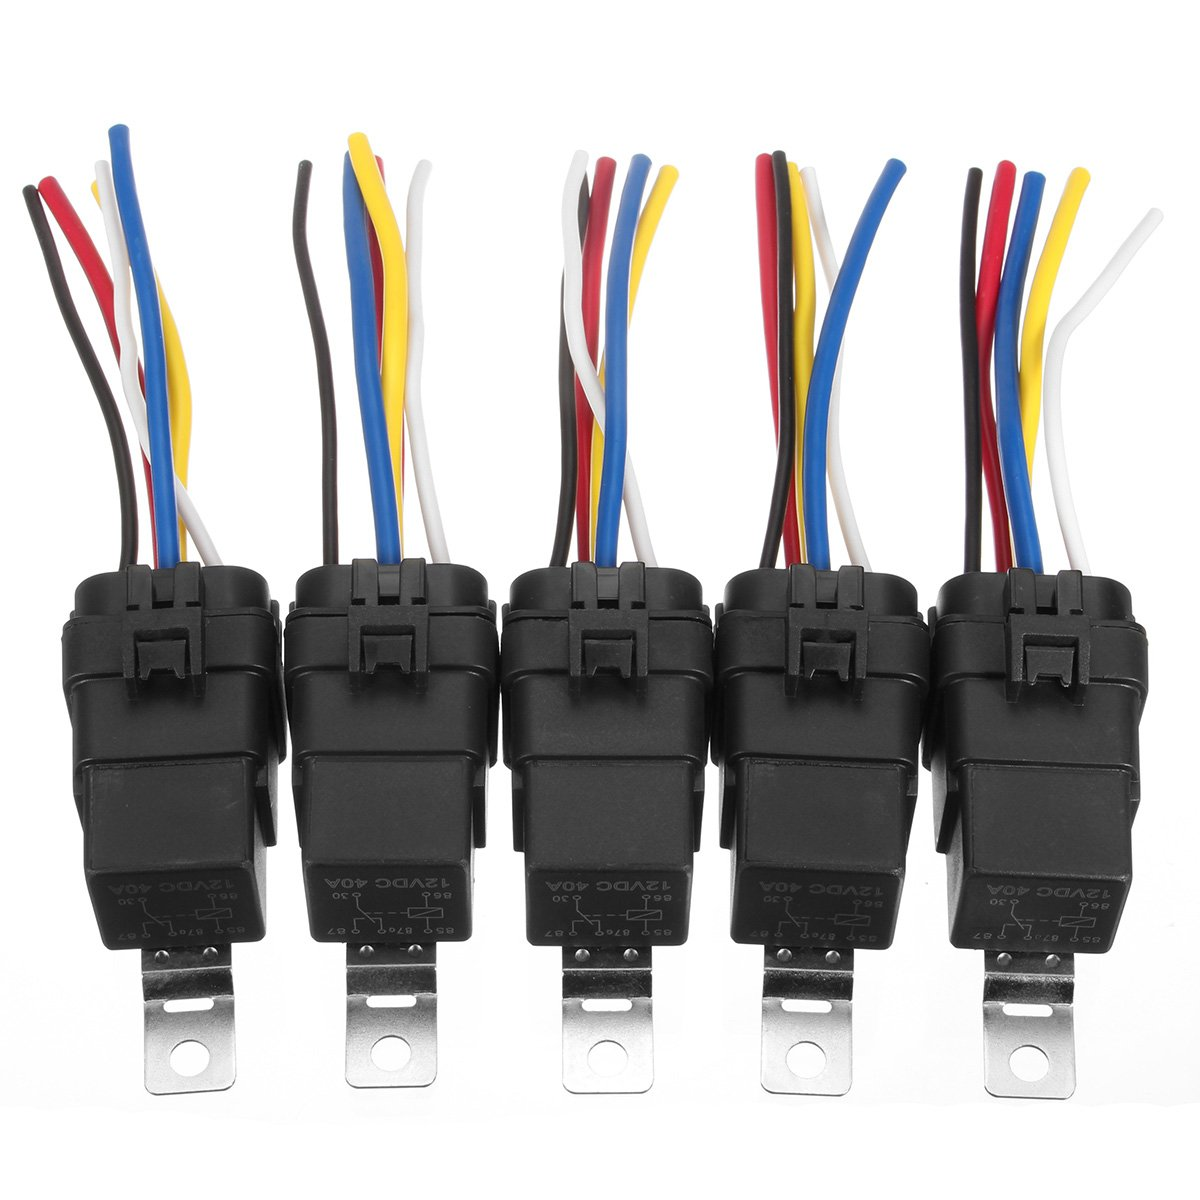 GOZAR 5 Pcs Automotive Relay Switch Harness 12AWG Wires Waterproof 40//30Amp 12VDC